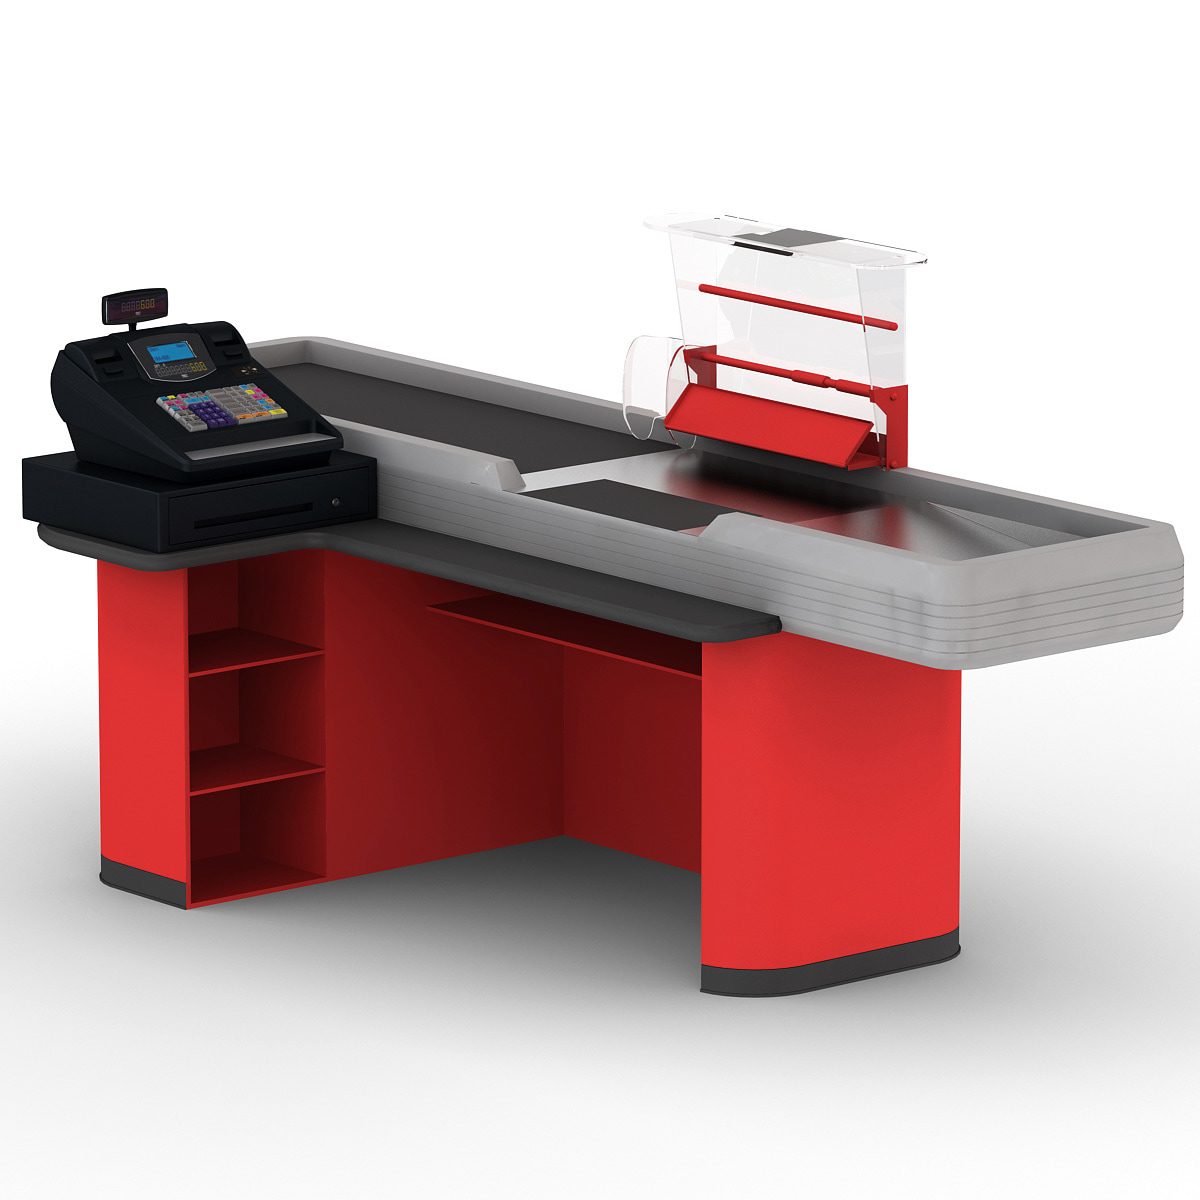 Cash_Counter_V2_001.jpg